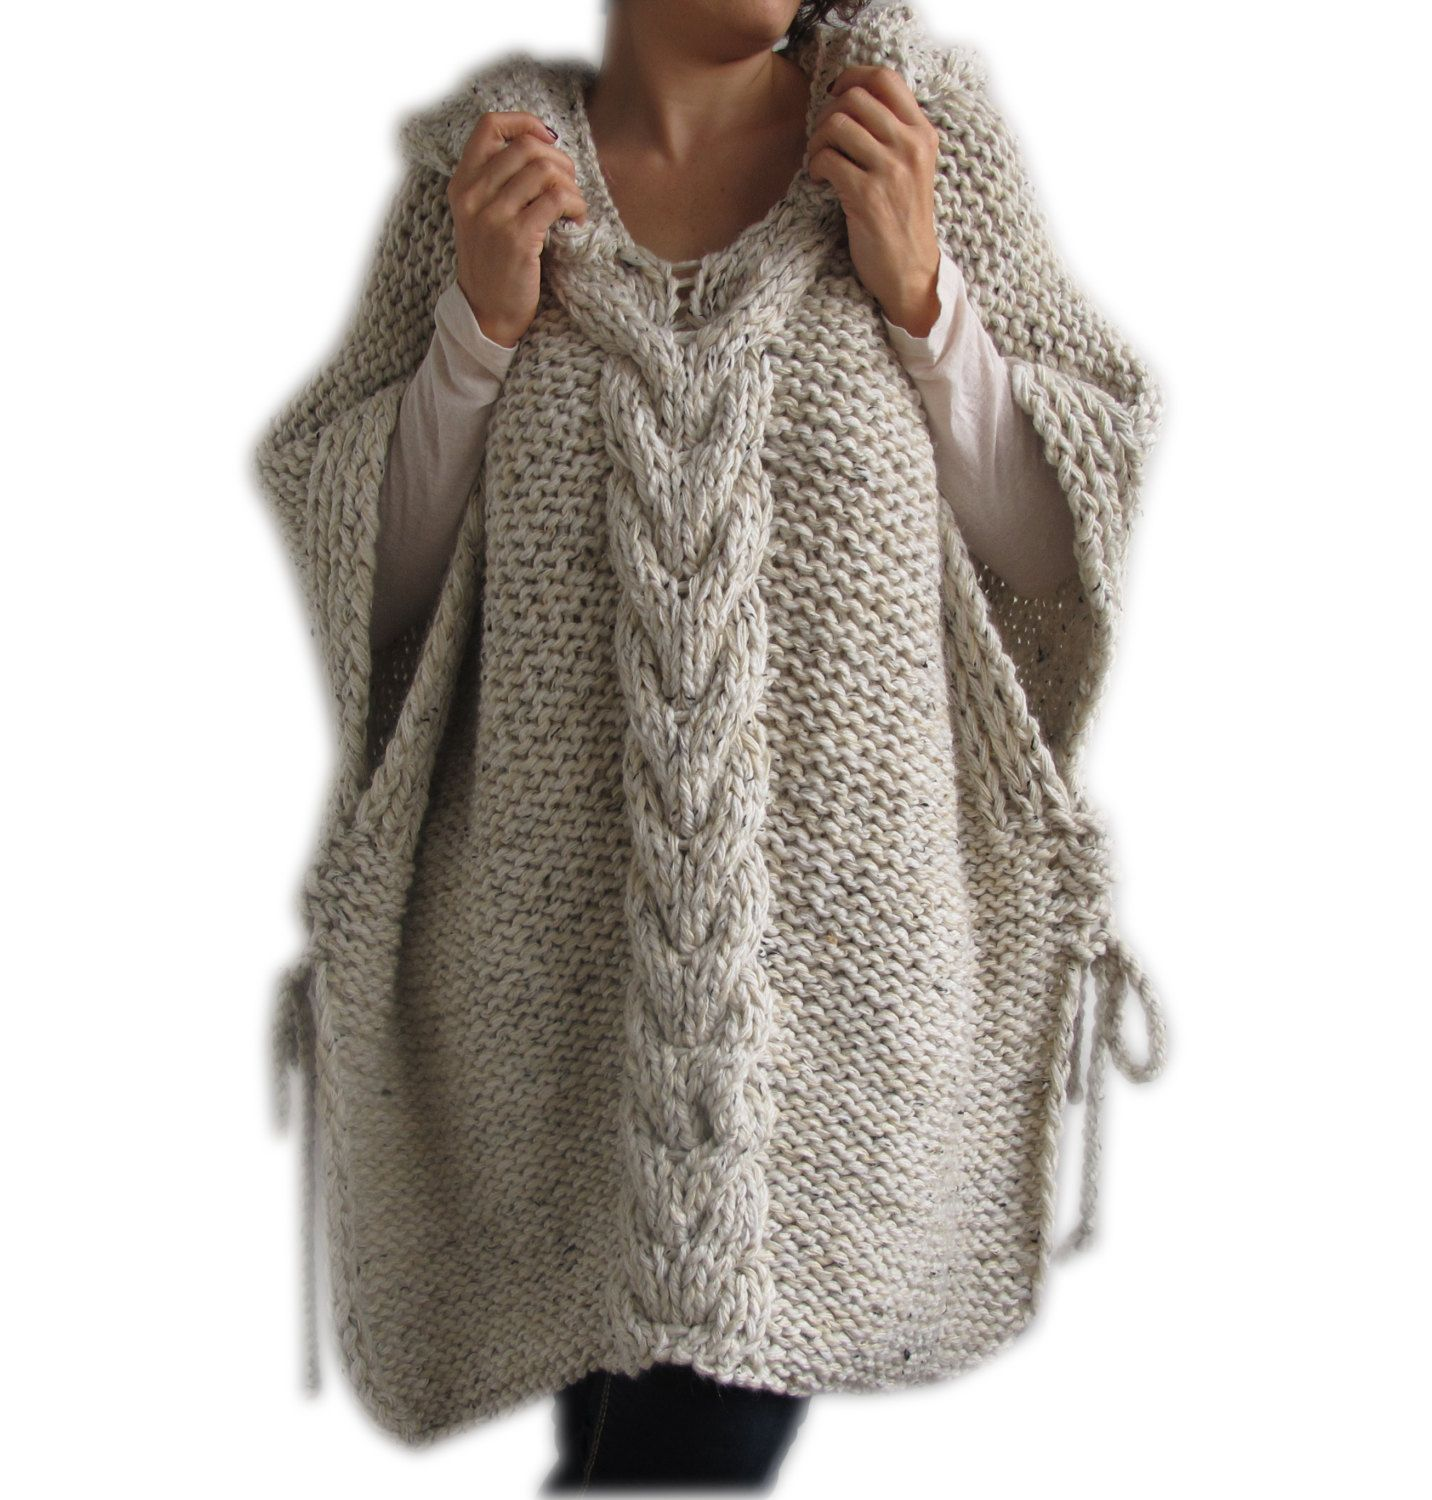 Knitting Ponchos : Clearence tweed beige hand knitted poncho with hood